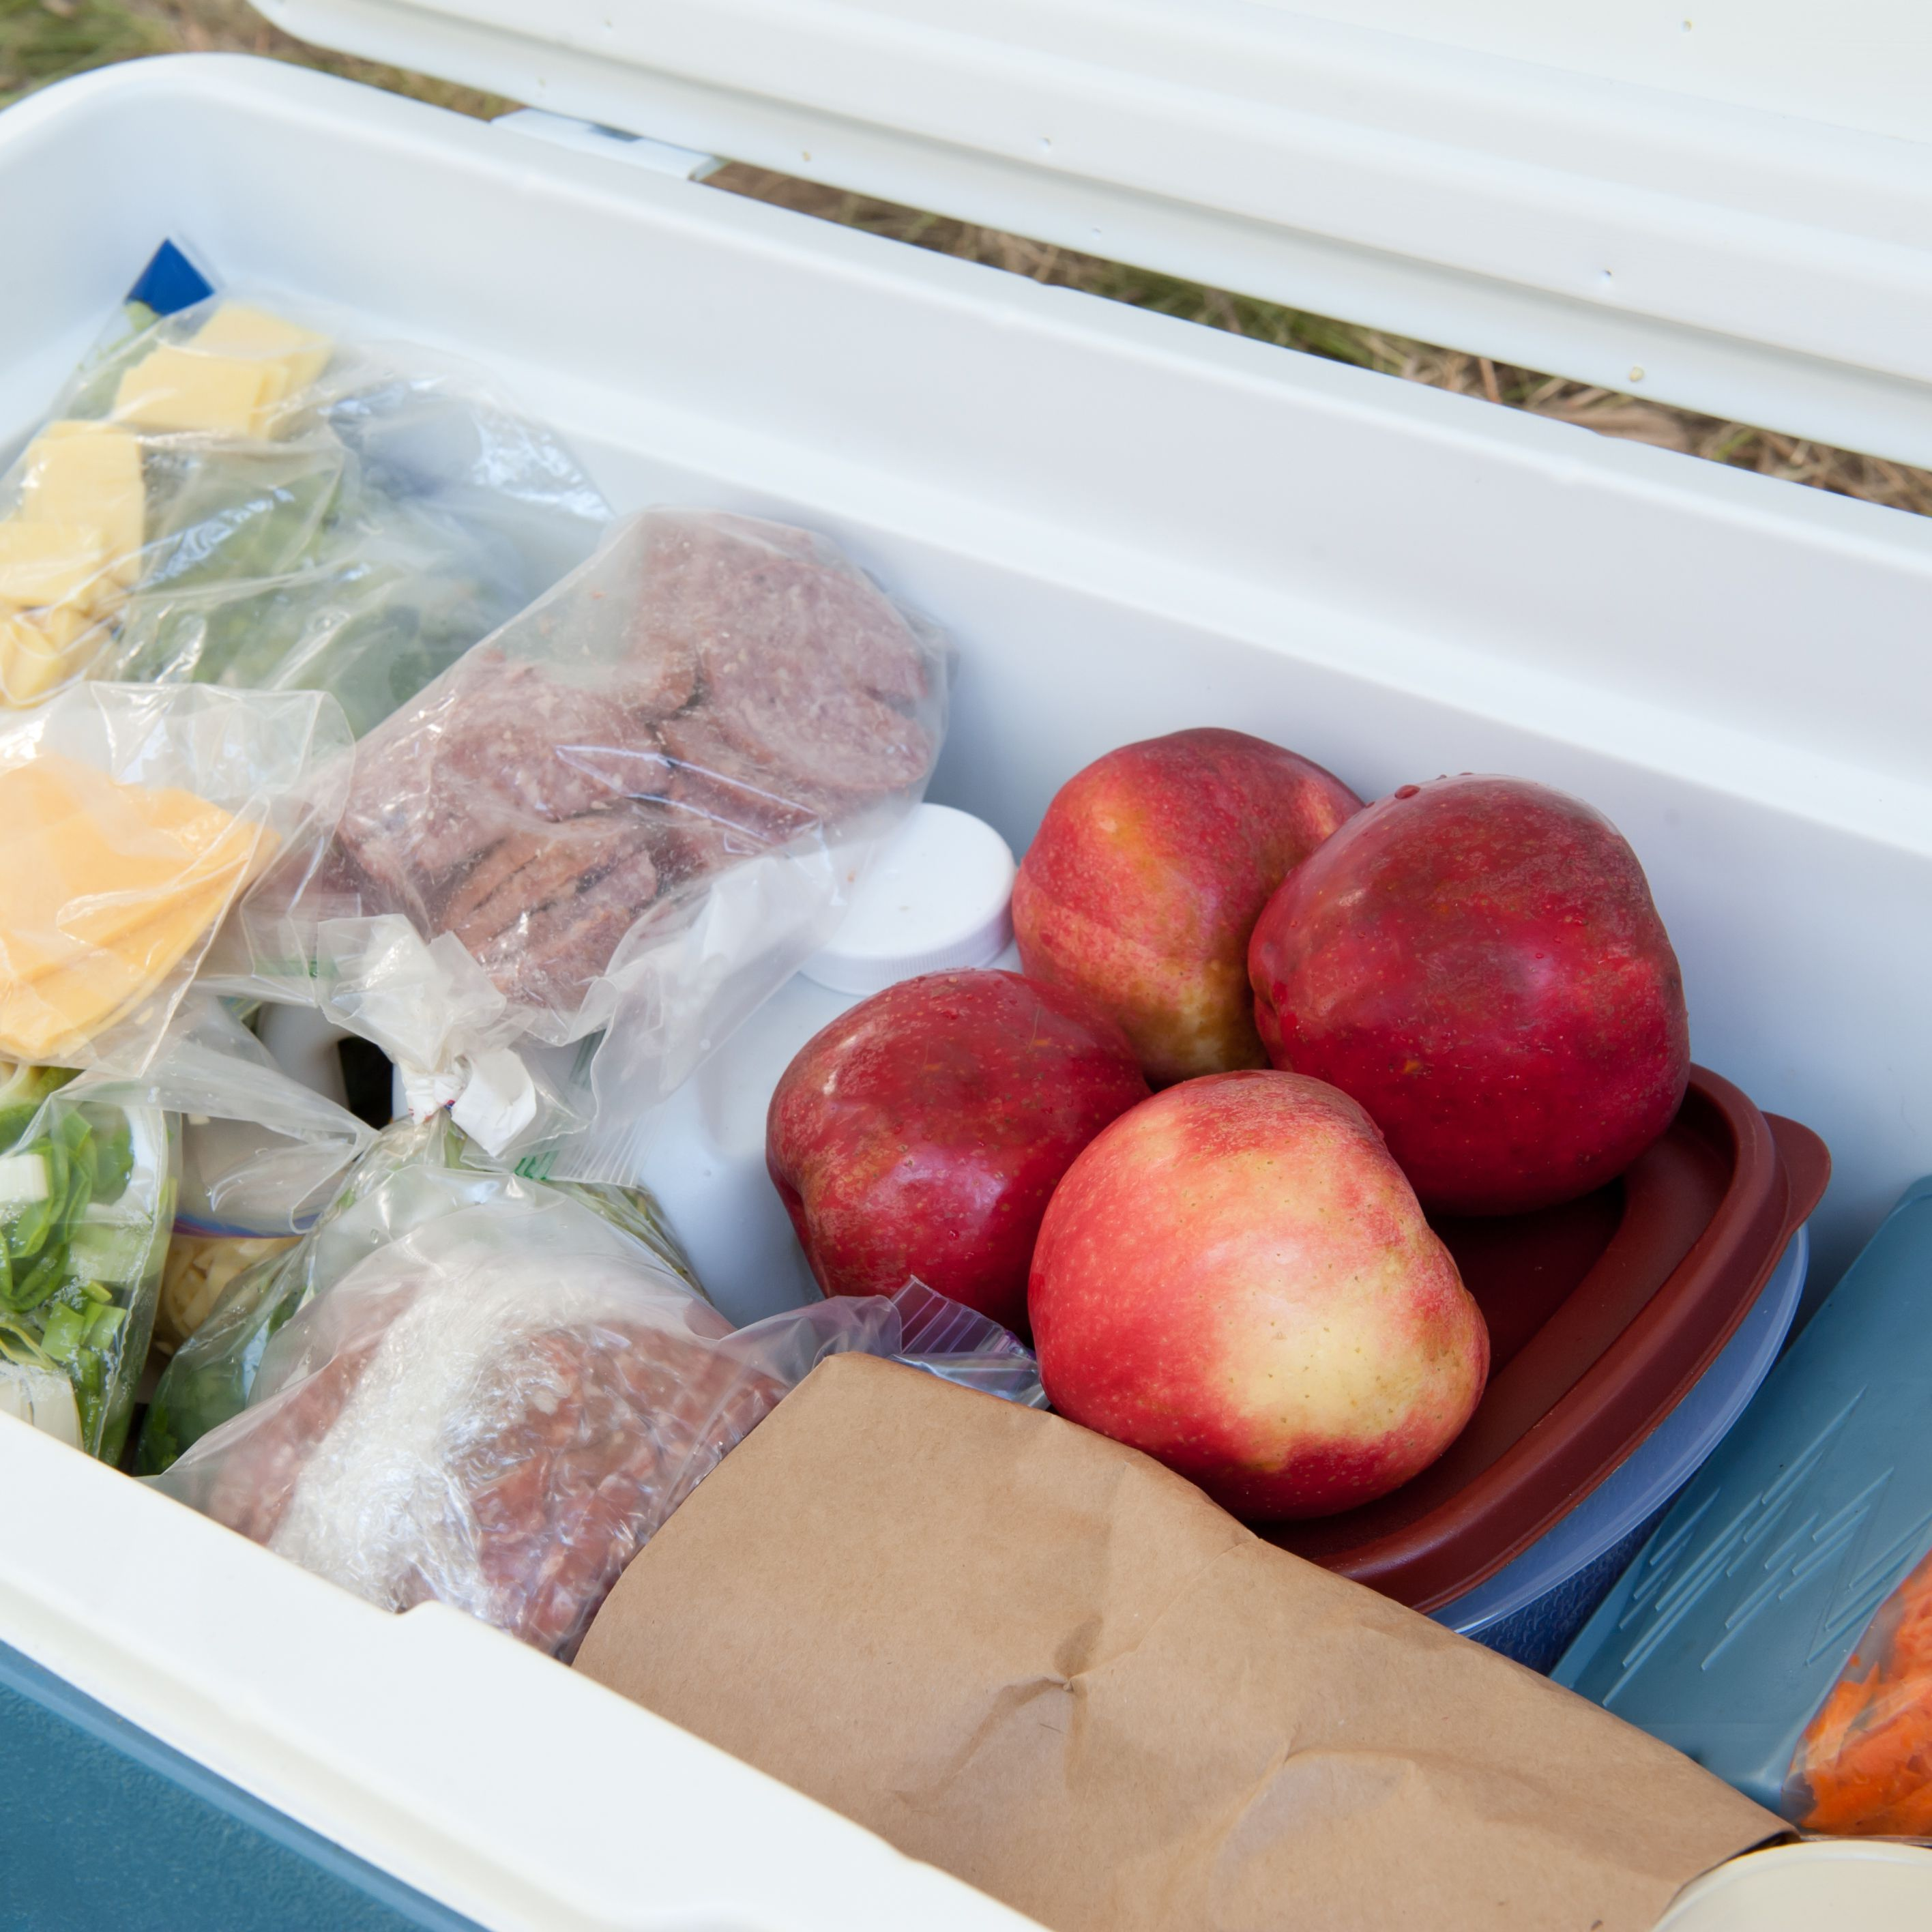 478275f70f5b The 8 Best Ice Packs for Coolers in 2019